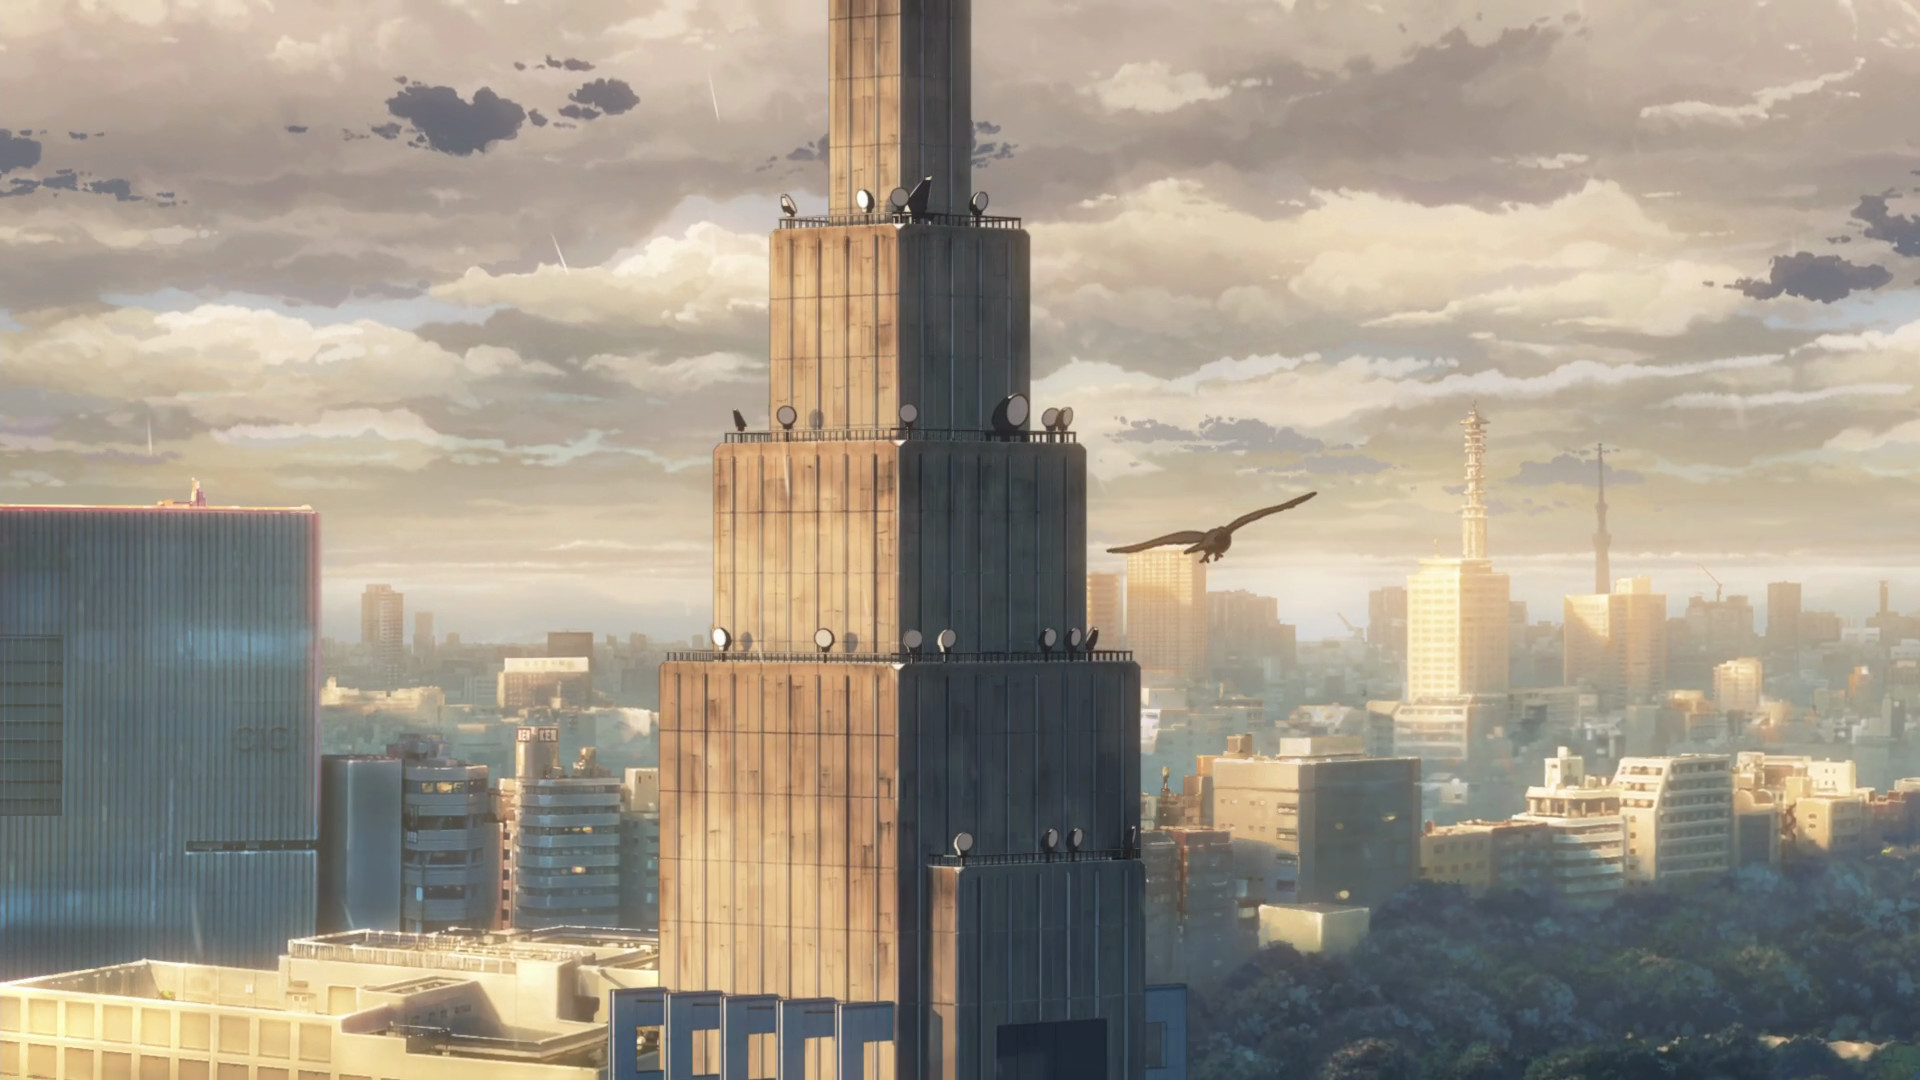 1920x1080 Anime  anime The Garden of Words cityscape painted building  building